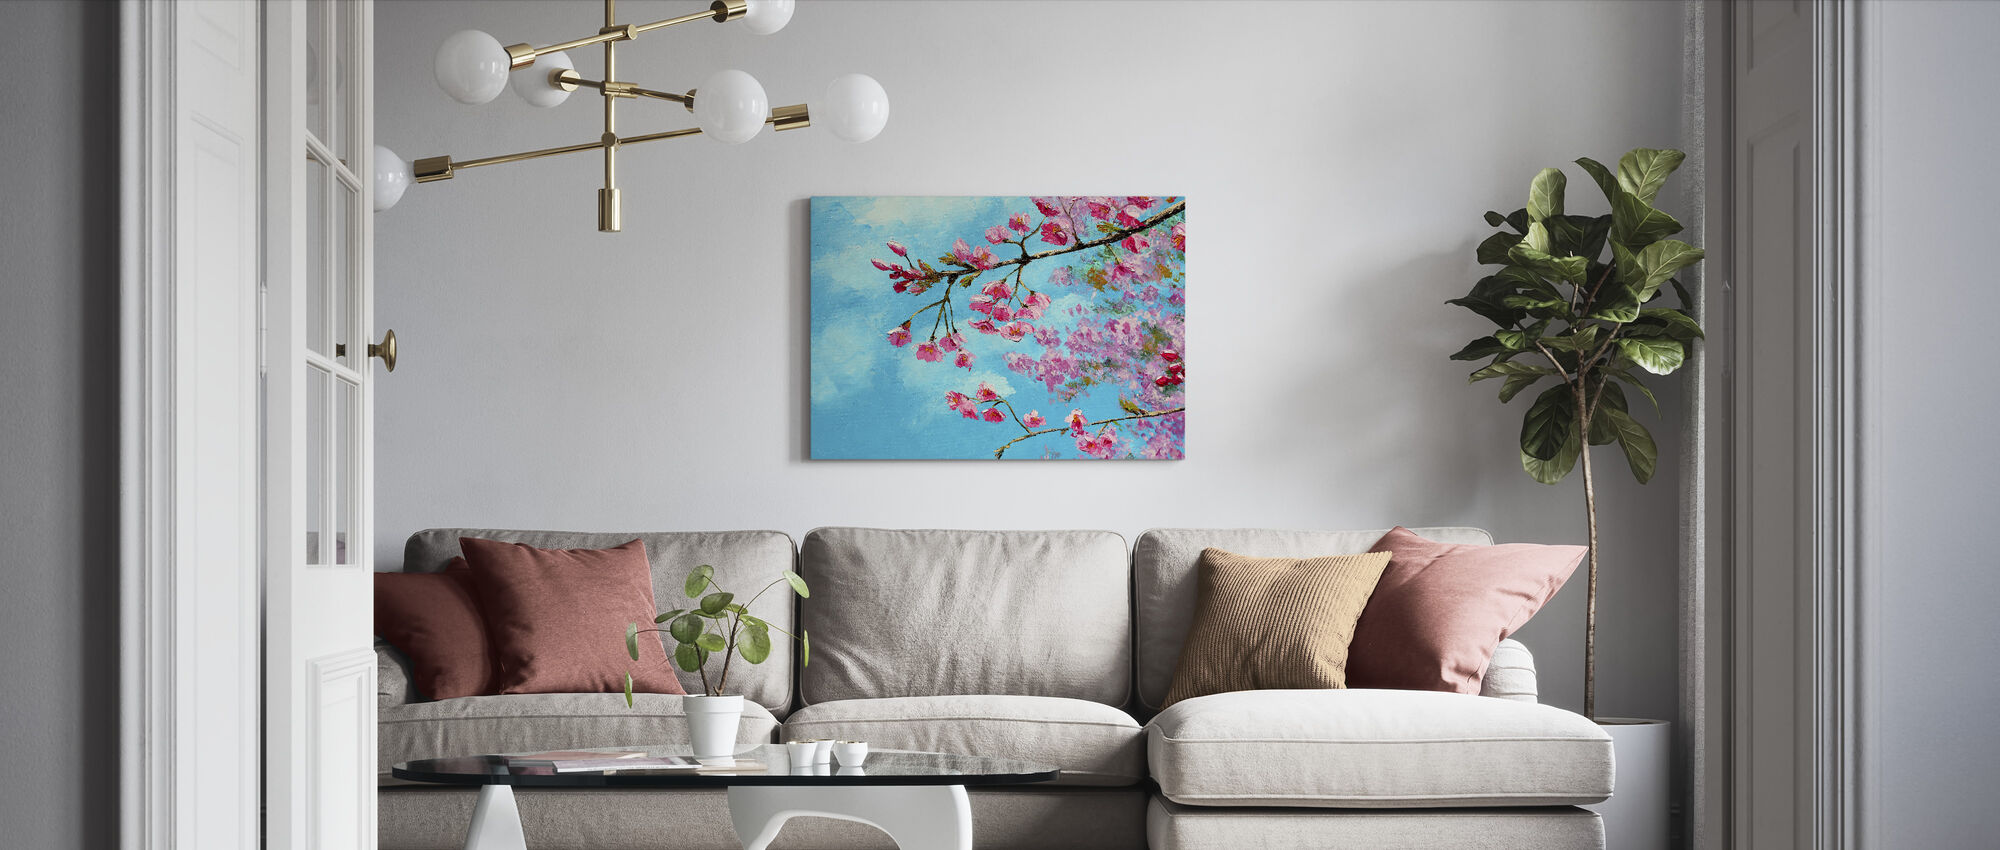 Cherry Blossom Blue - Canvas print - Living Room